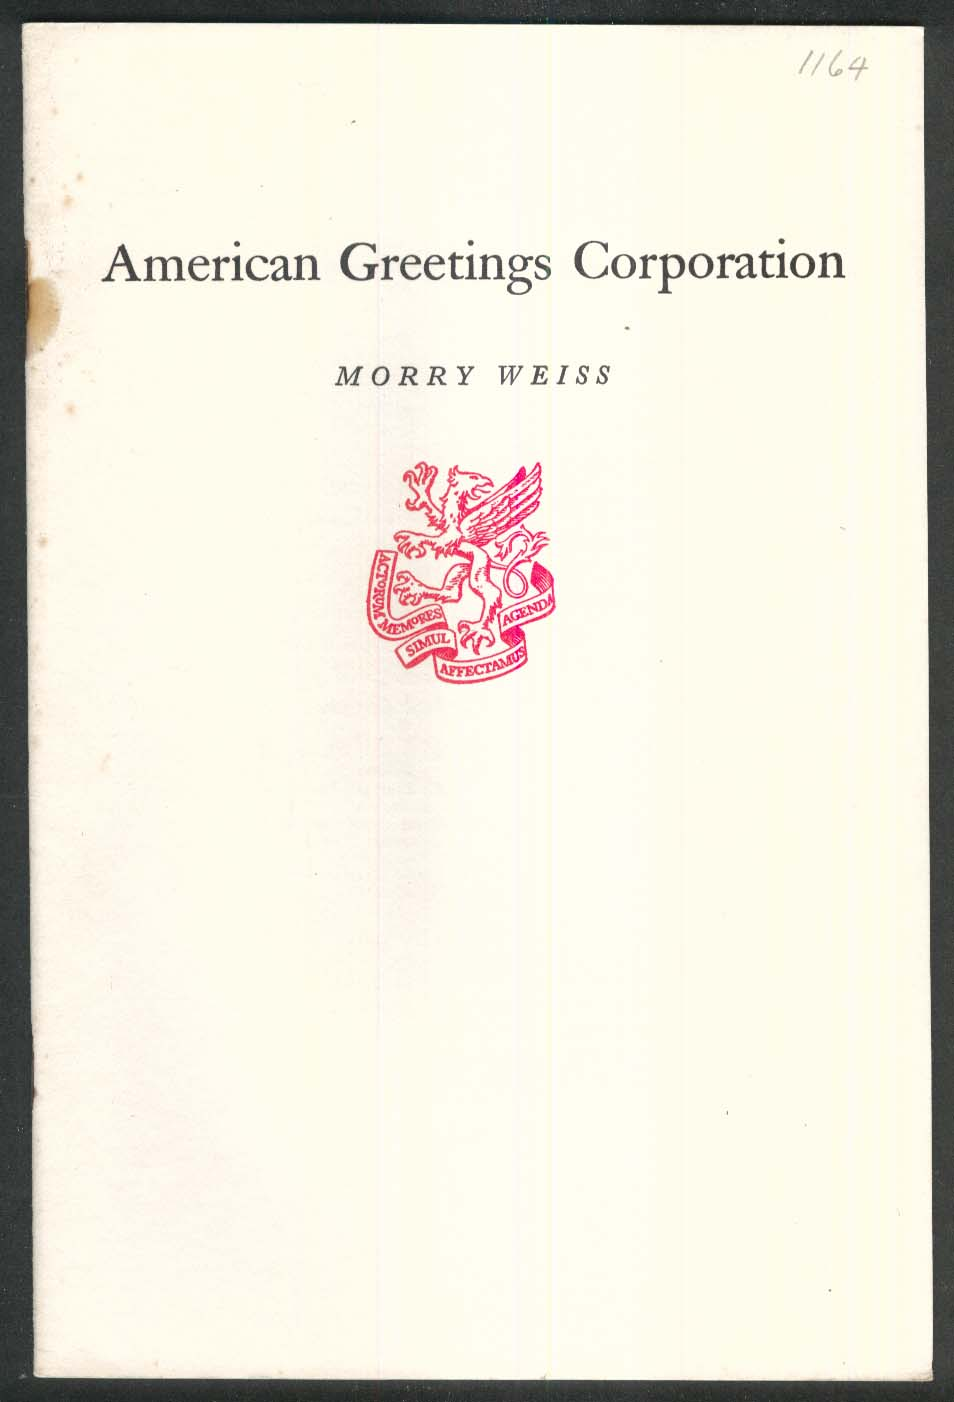 Newcomen 1164 american greetings corporation morry weiss 2 1982 1st newcomen 1164 american greetings corporation morry weiss 2 1982 1st printing m4hsunfo